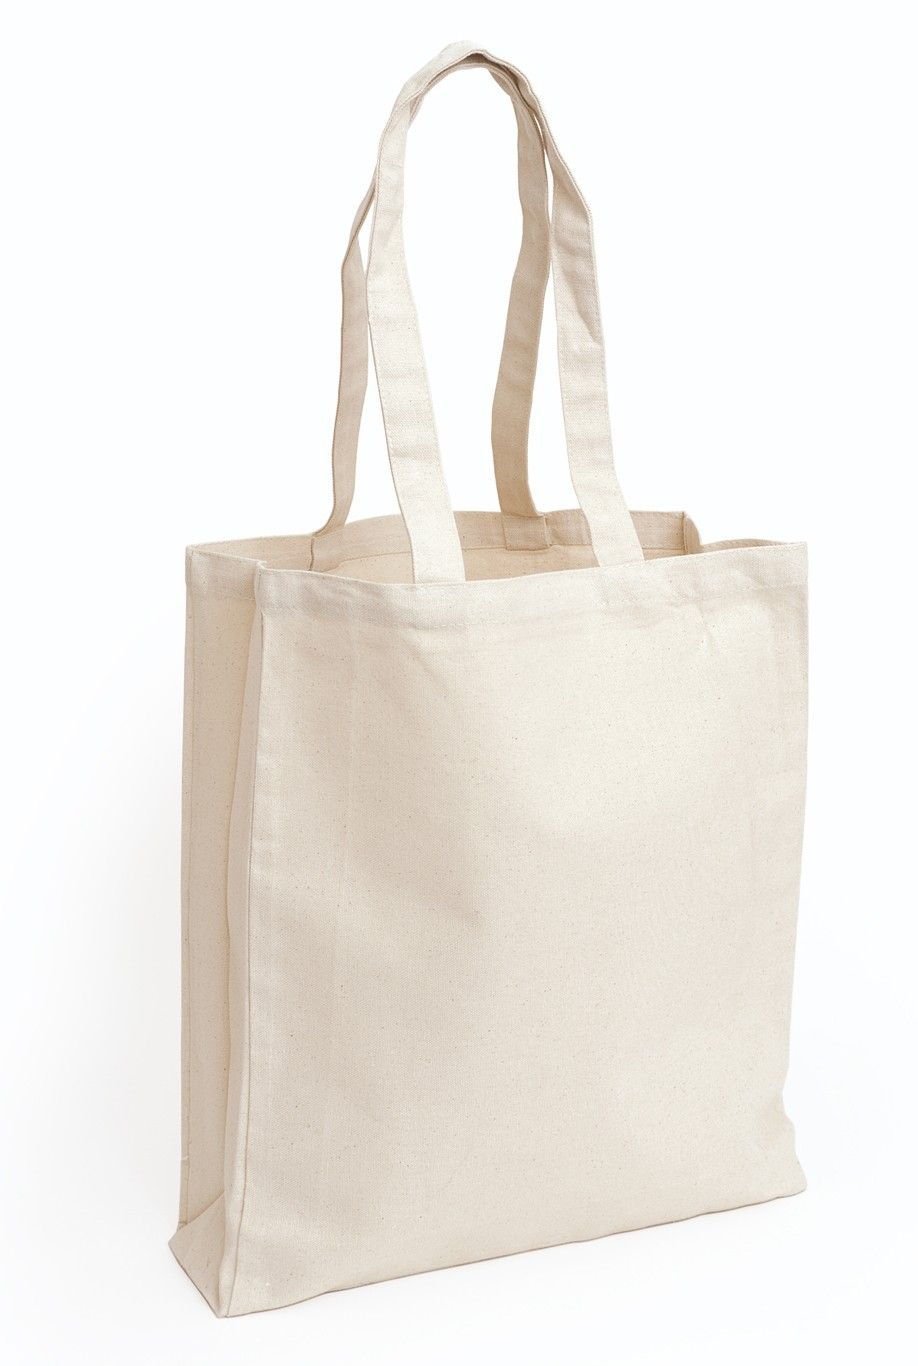 Design Your Own - Deluxe Natural Canvas Tote Bag (Long Handles ...